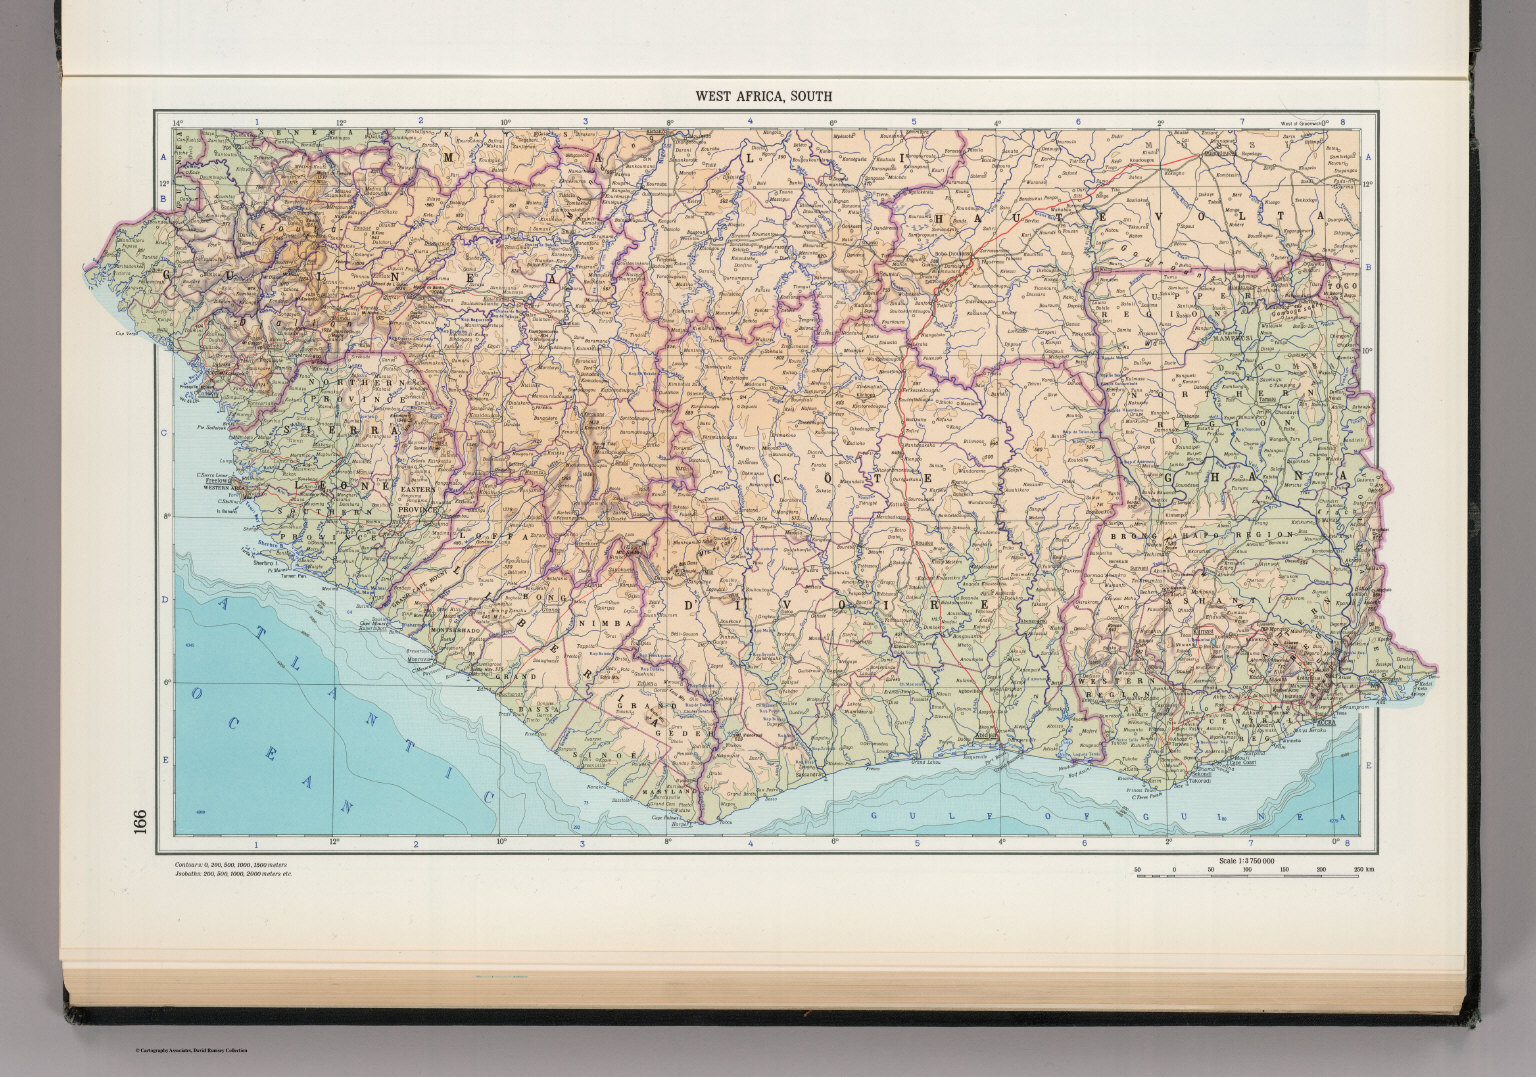 166 west africa south the world atlas david rumsey historical west africa south the world atlas gumiabroncs Choice Image